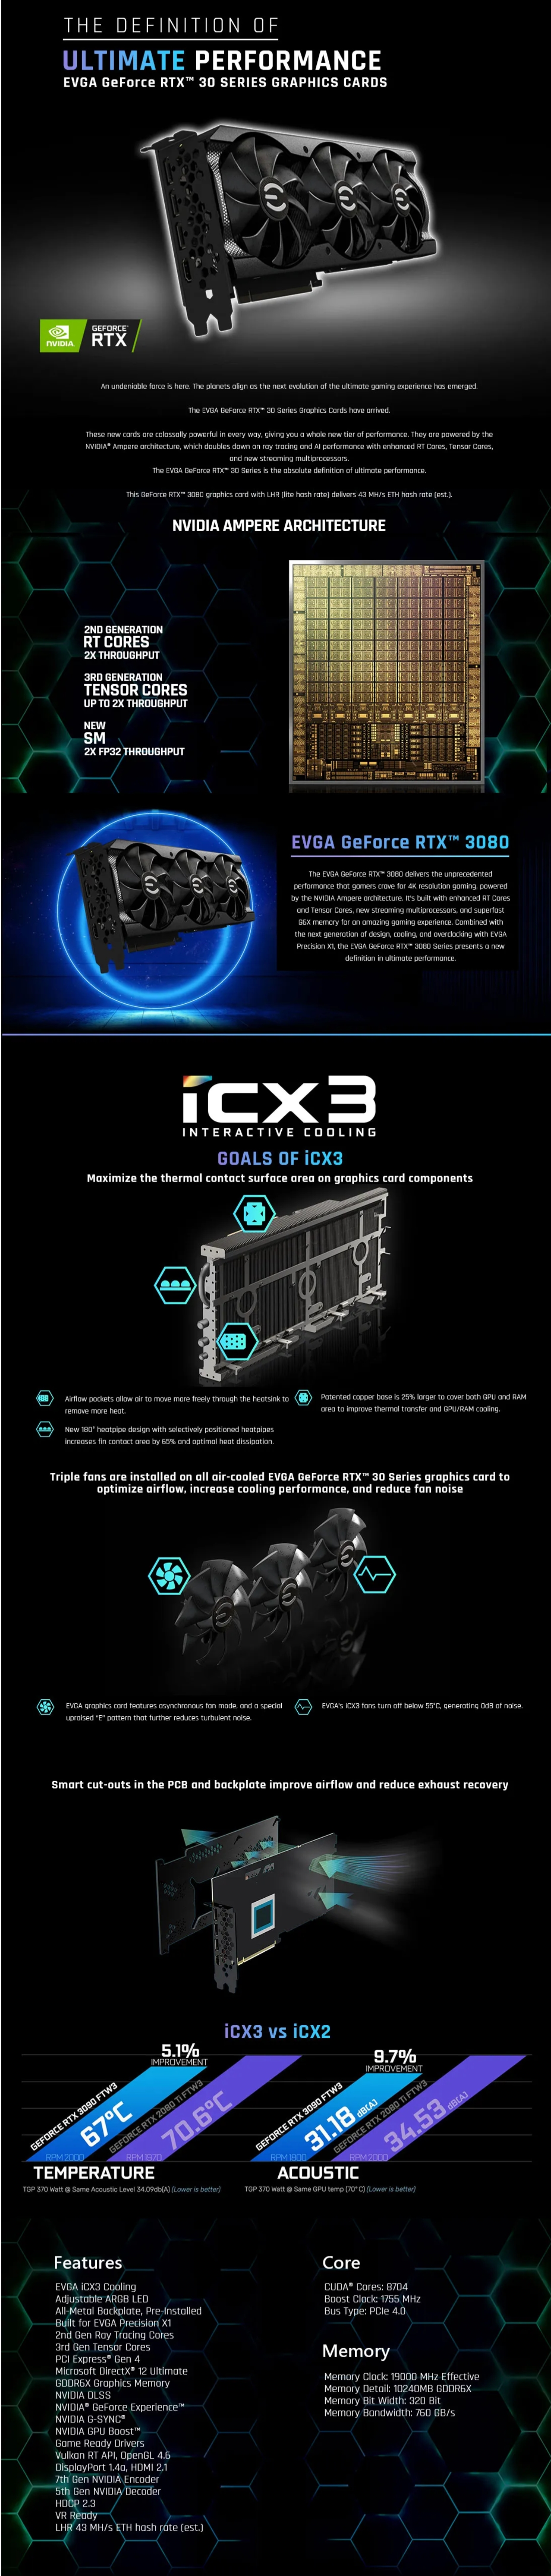 A large marketing image providing additional information about the product eVGA GeForce RTX 3080 XC3 ULTRA Gaming 10GB GDDR6X LHR - Additional alt info not provided